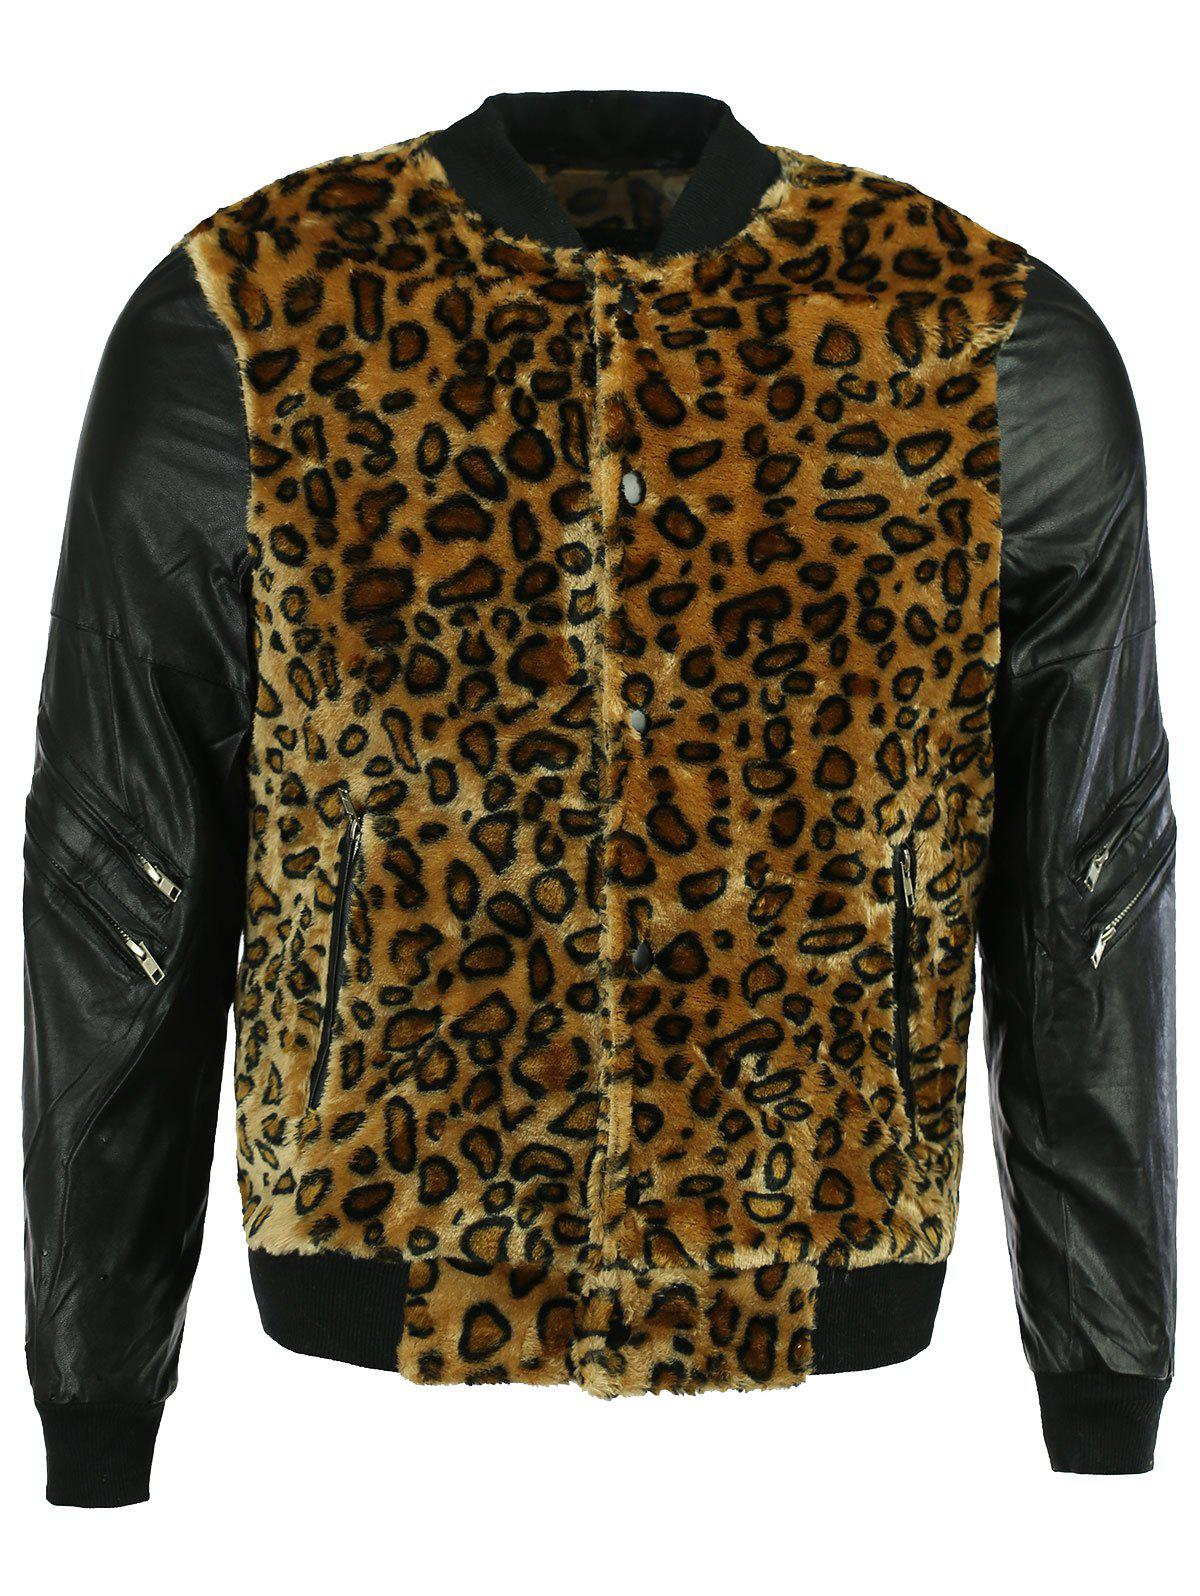 PU Leather Splicing Leopard Pattern Bomber Jacket - COLORMIX L